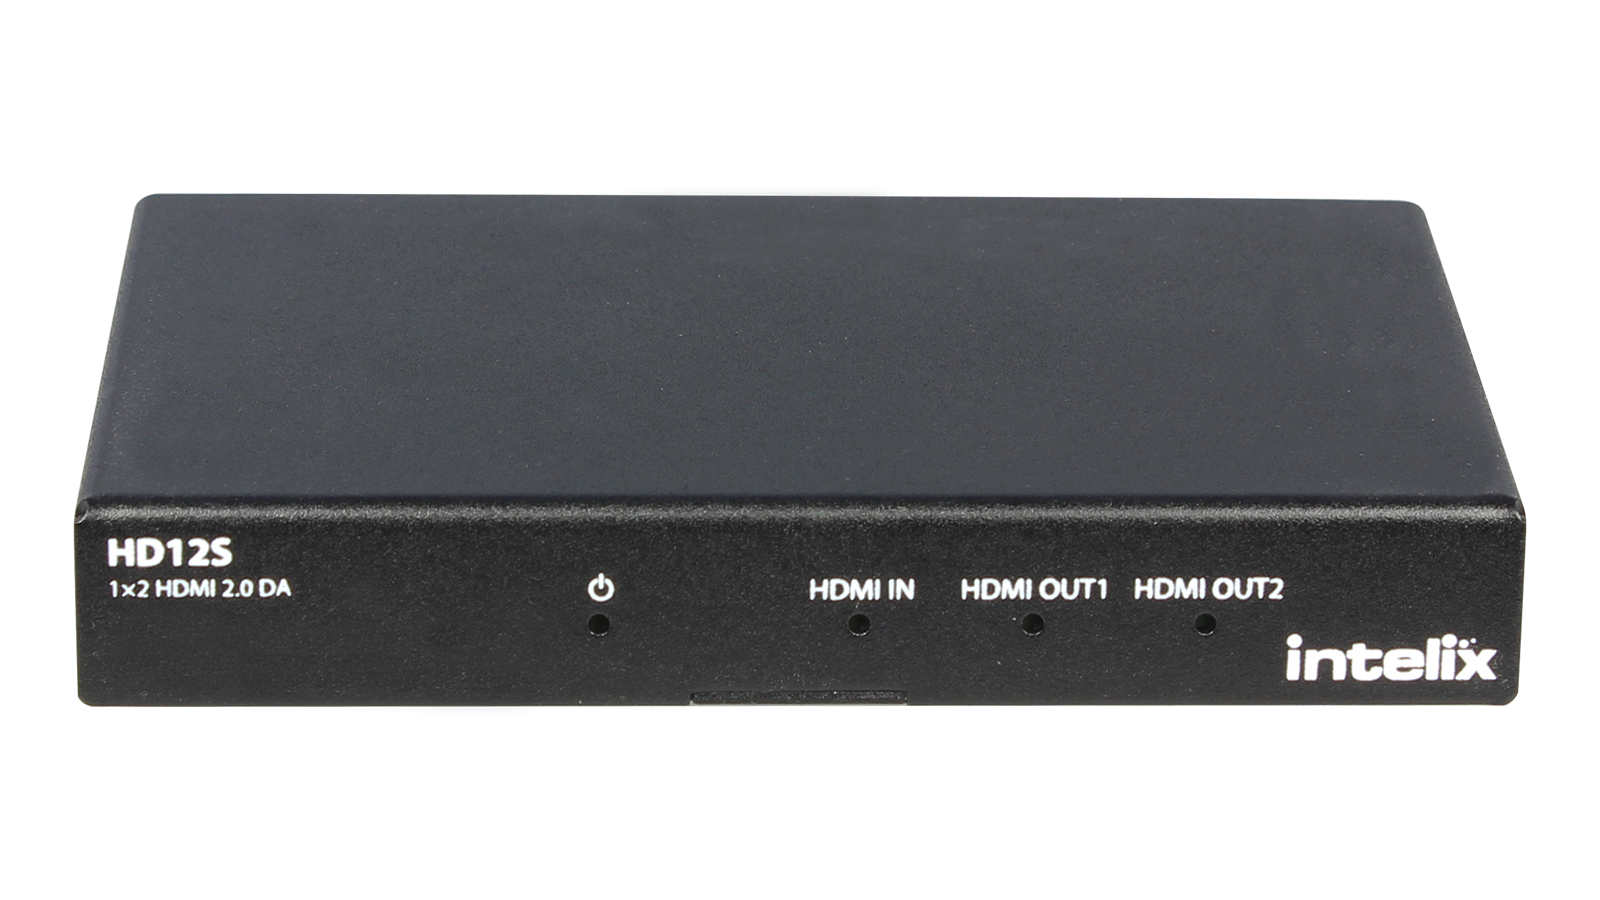 Hd12s 1x2 Hdmi Distribution Amp Splitter 20 18g 4k60 444 550va Ups Home Theater For Structured Wiring Enclosures 4 Outlets